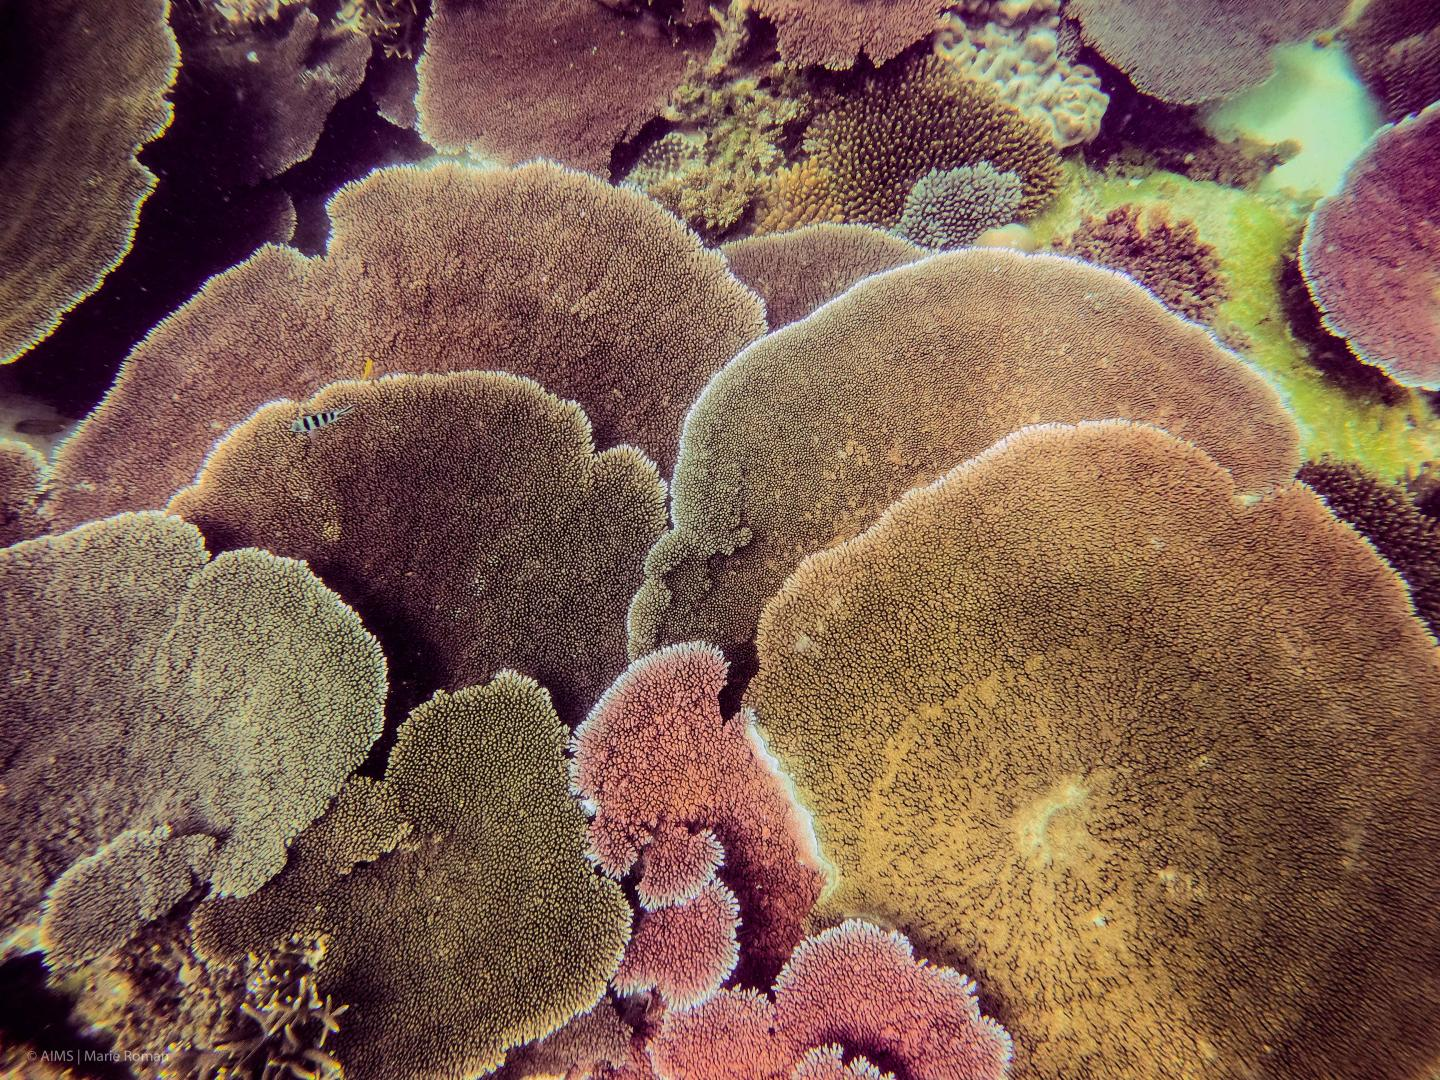 Table corals